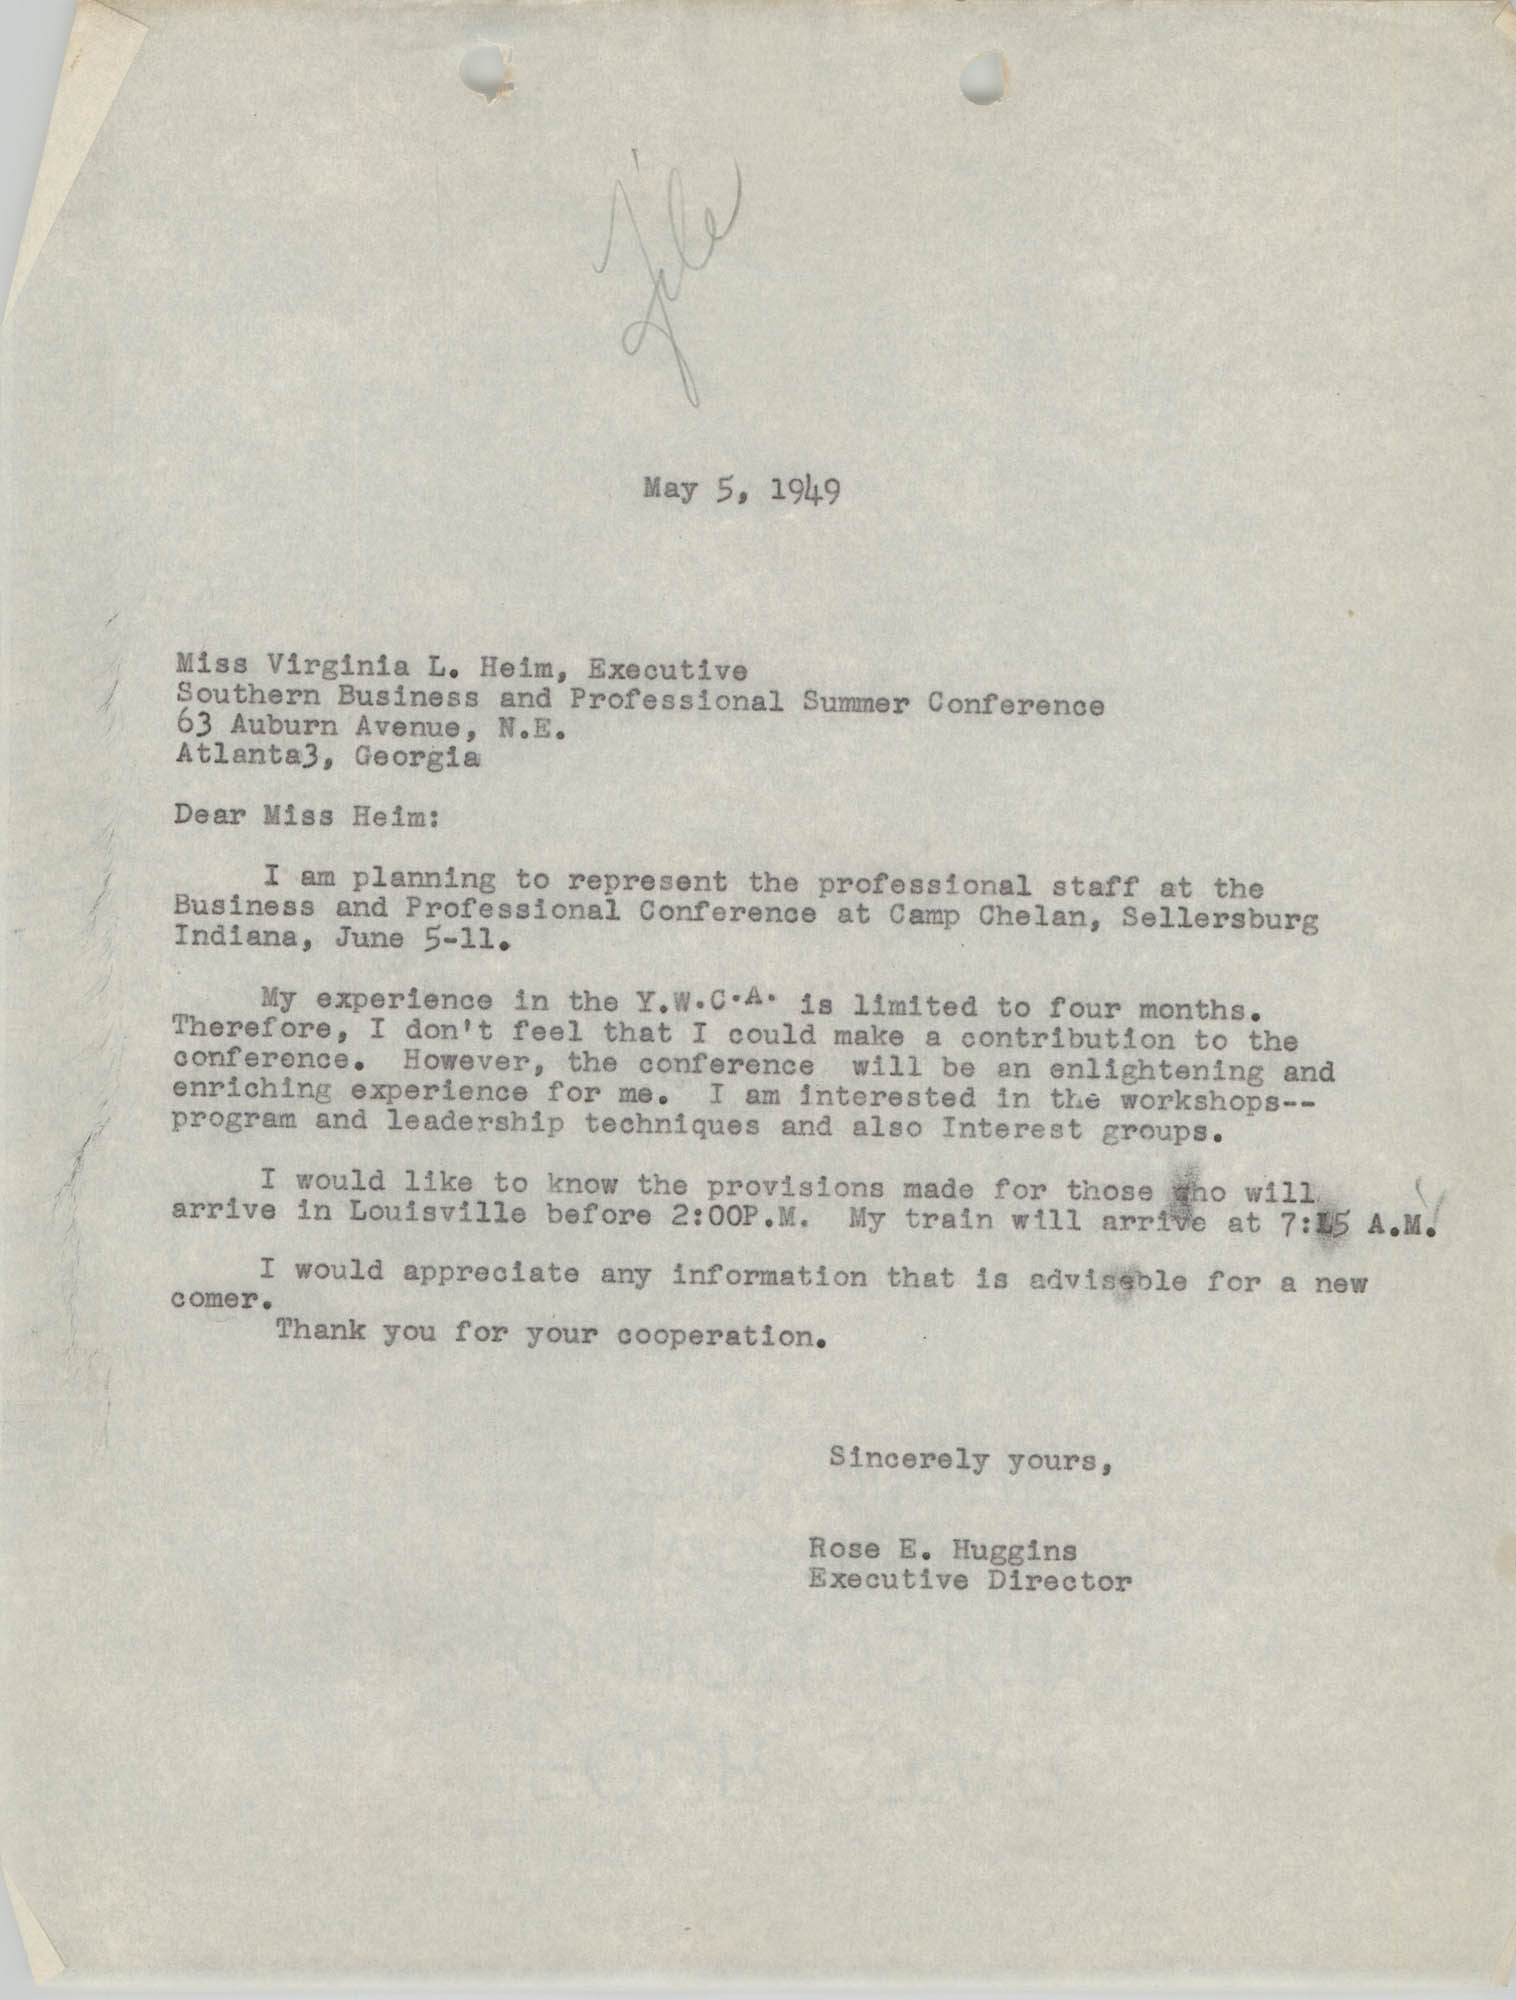 Letter from Rose E. Huggins to Virginia L. Heim, May 5, 1949